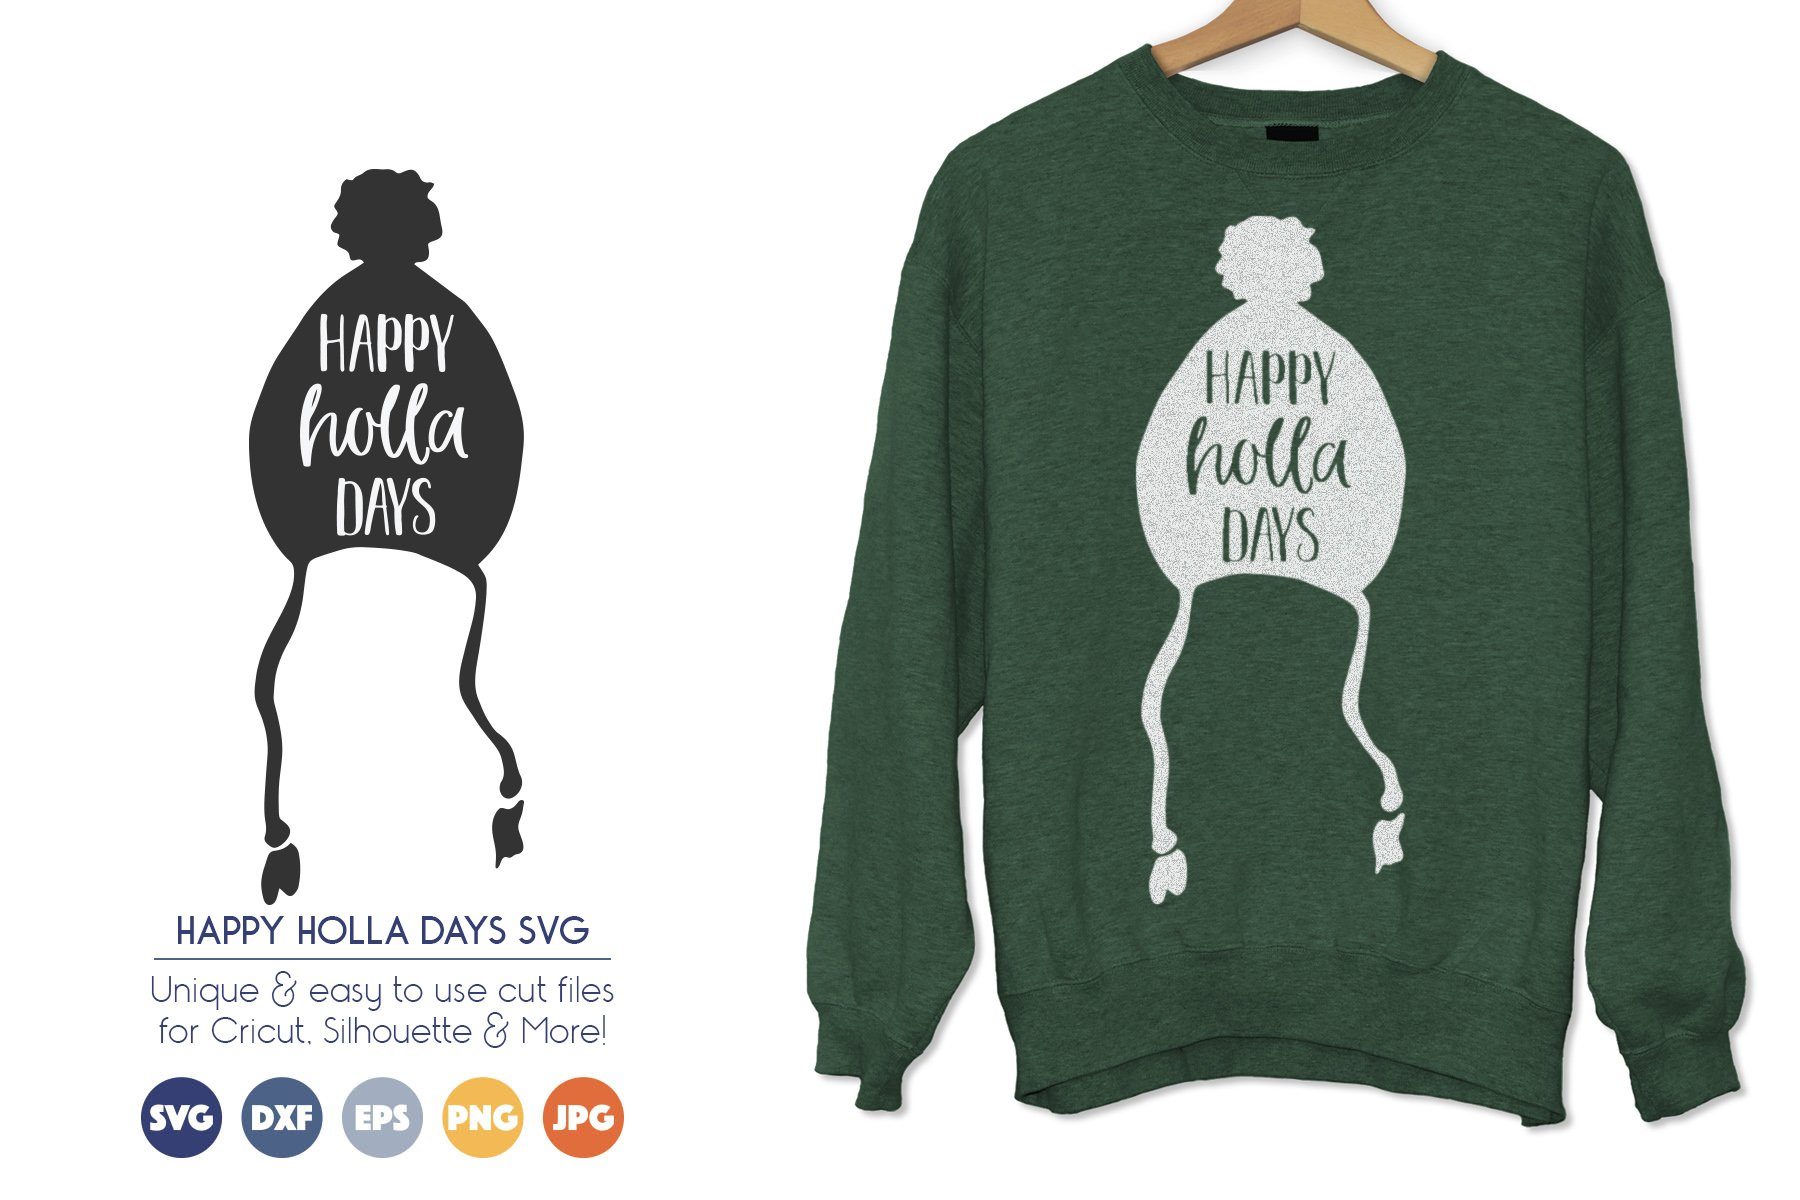 Happy Holla Days - A Cute Hand Drawn SVG Design example image 1